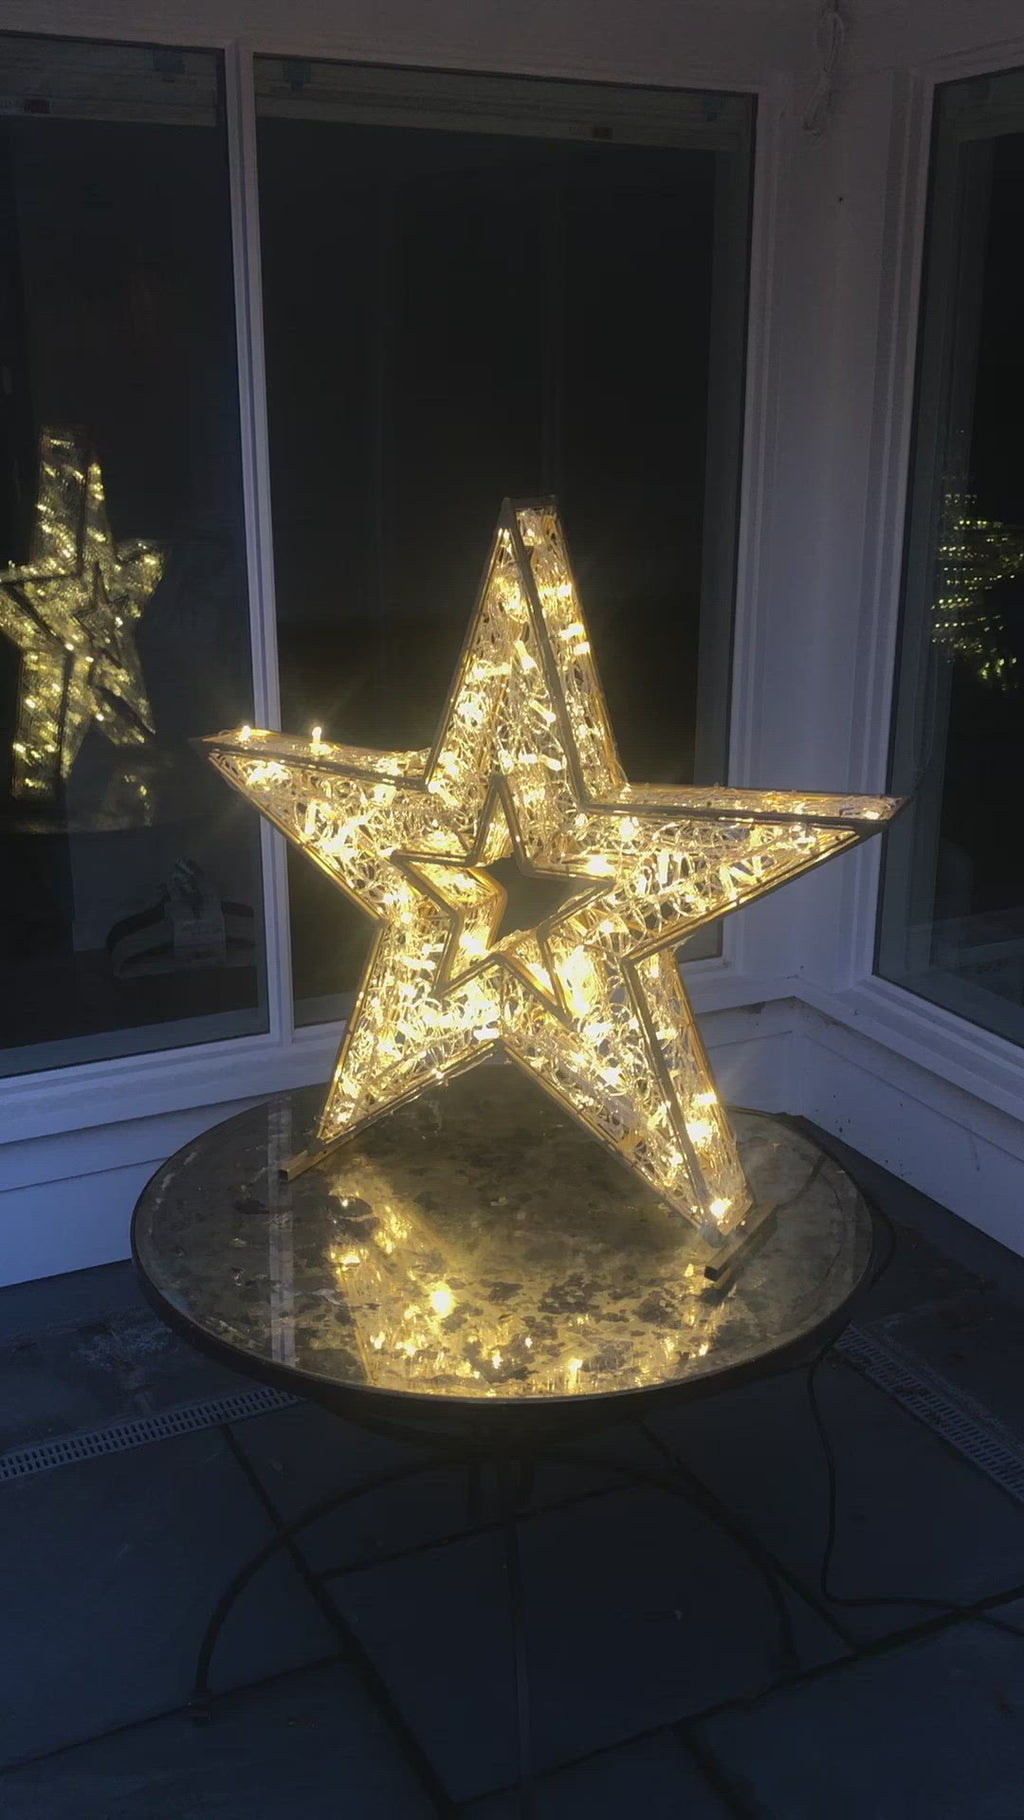 3D Selfie Motif Star LED 2020 Holiday Lights Christmas Decoration Animated Twinkle